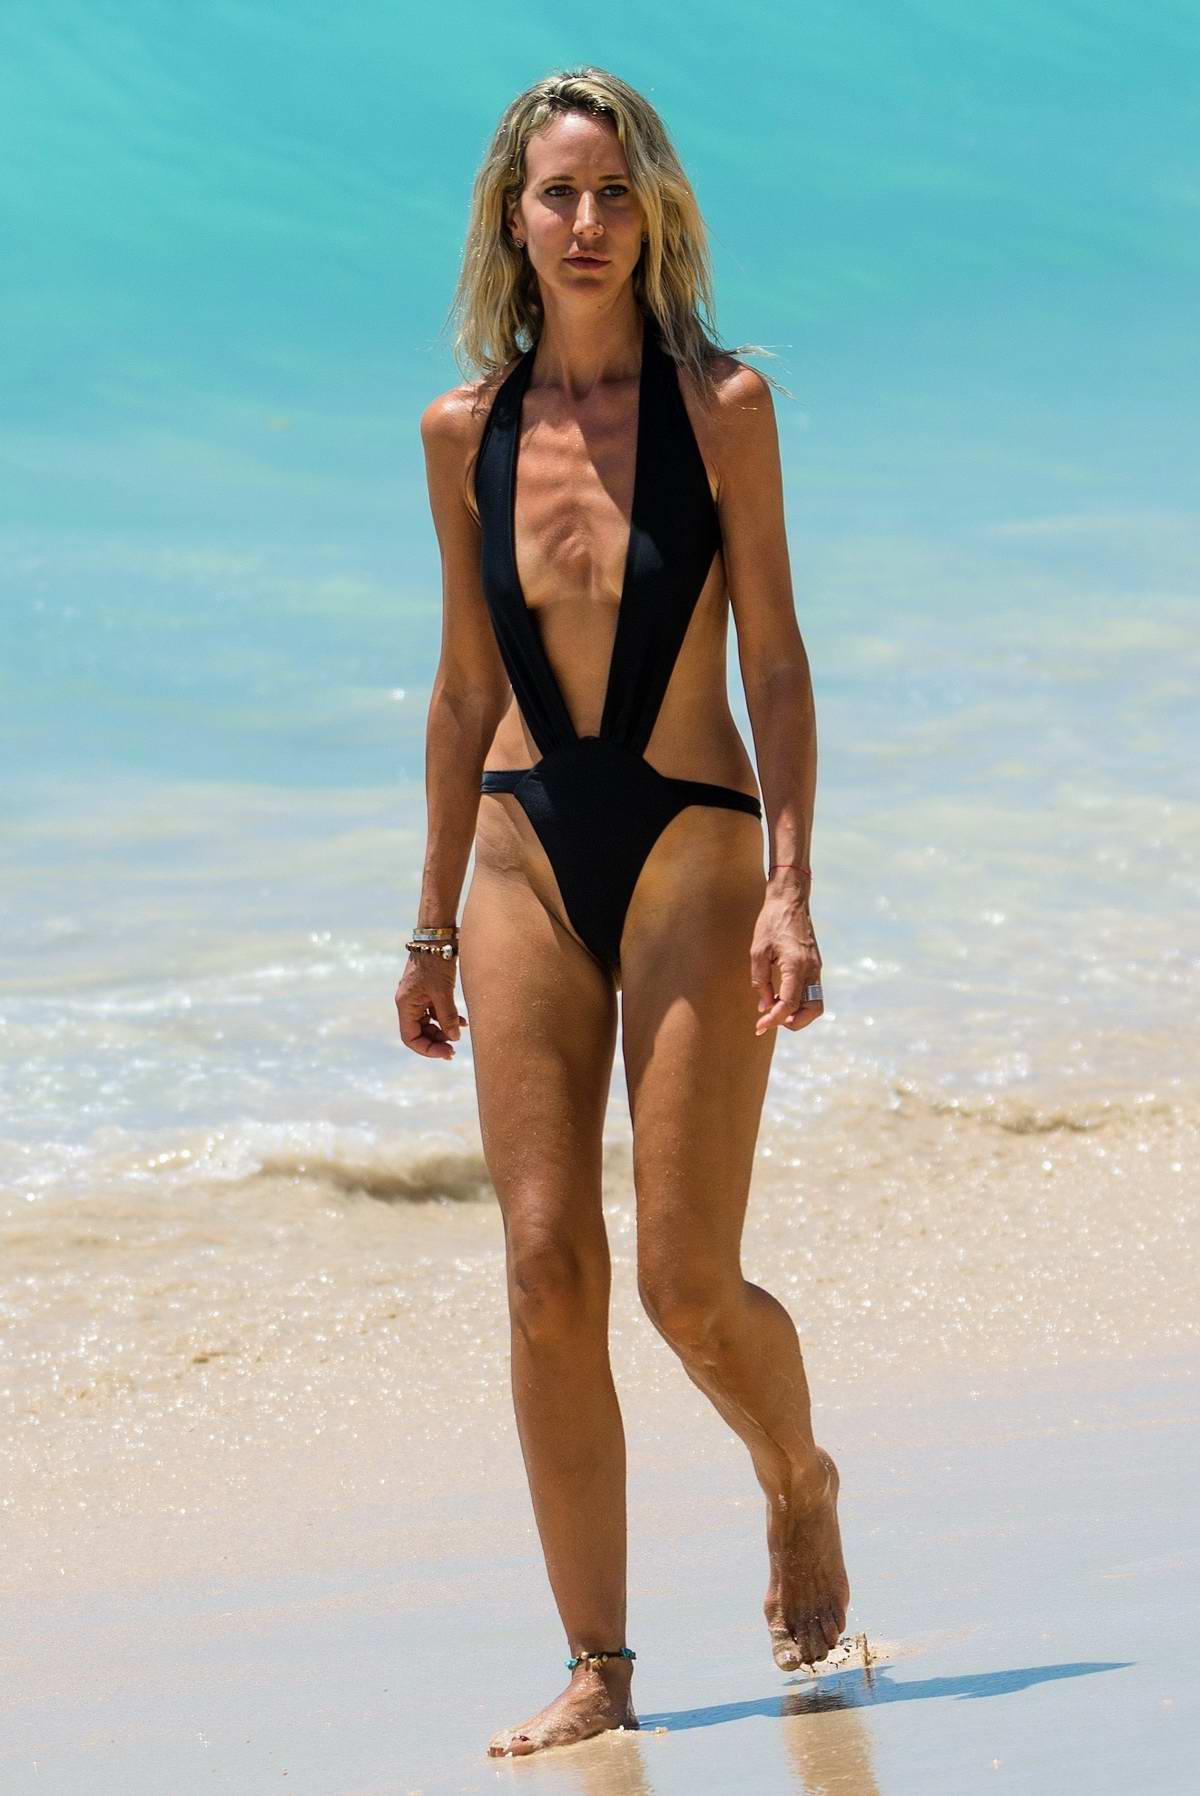 Lady Victoria Hervey rocks a black swimsuit while soaking up the sun at the beach in Barbados